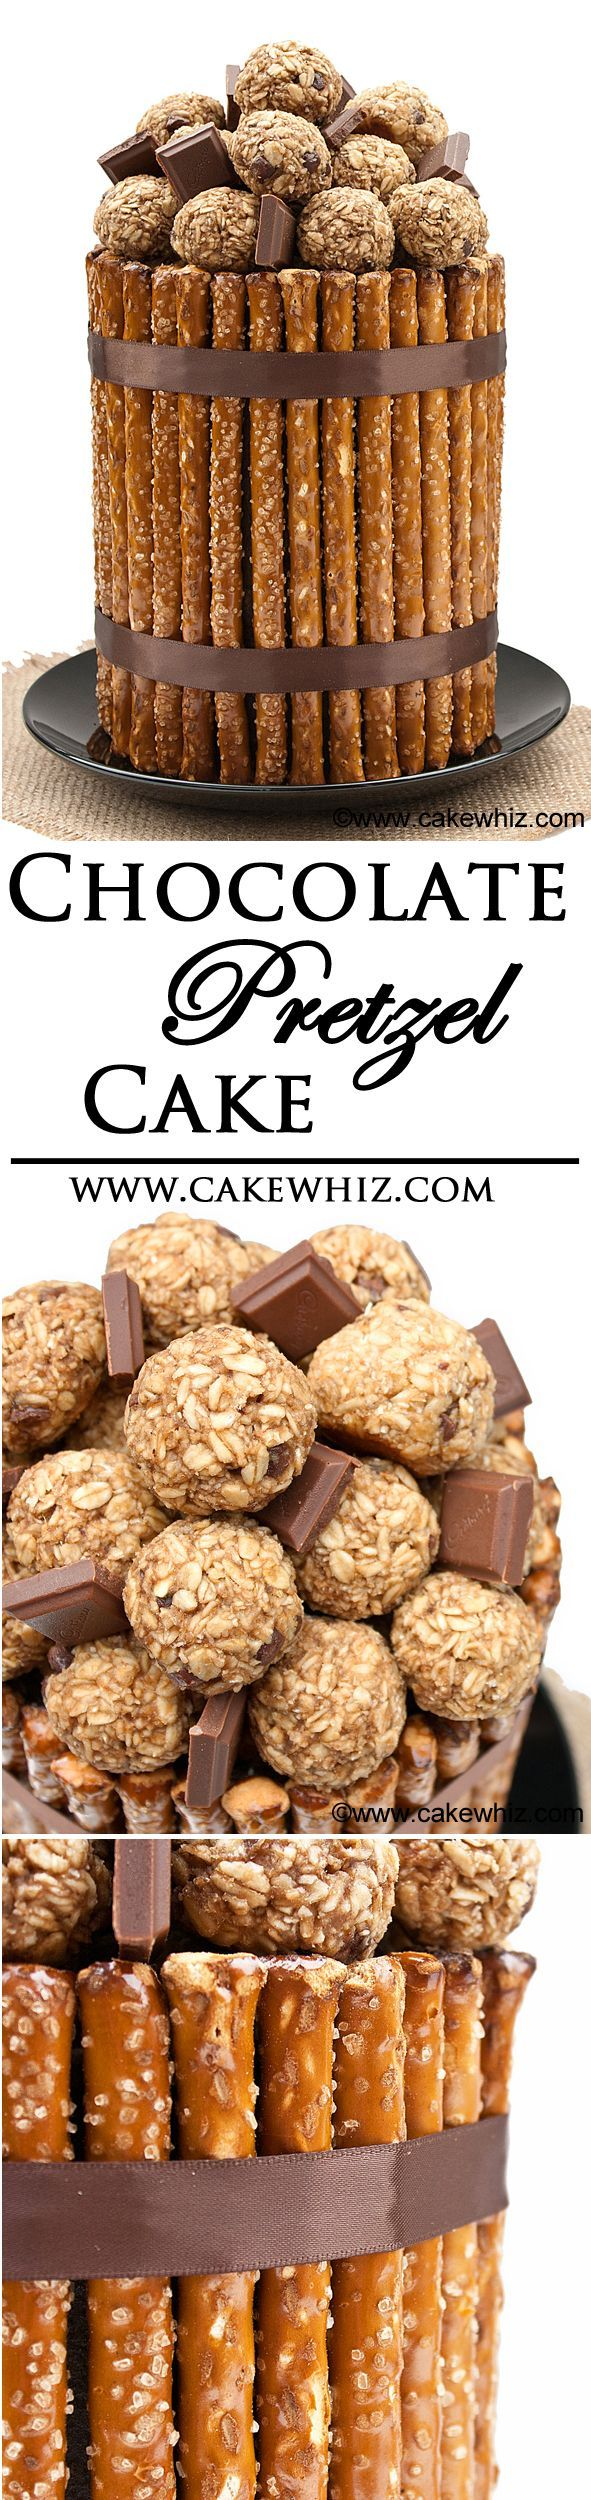 PRETZEL CAKE .... An awesome double decker chocolate cake frosted in chocolate buttercream and then covered in pretzel rods and topped off with chocolate peanut butter balls! From cakewhiz.com